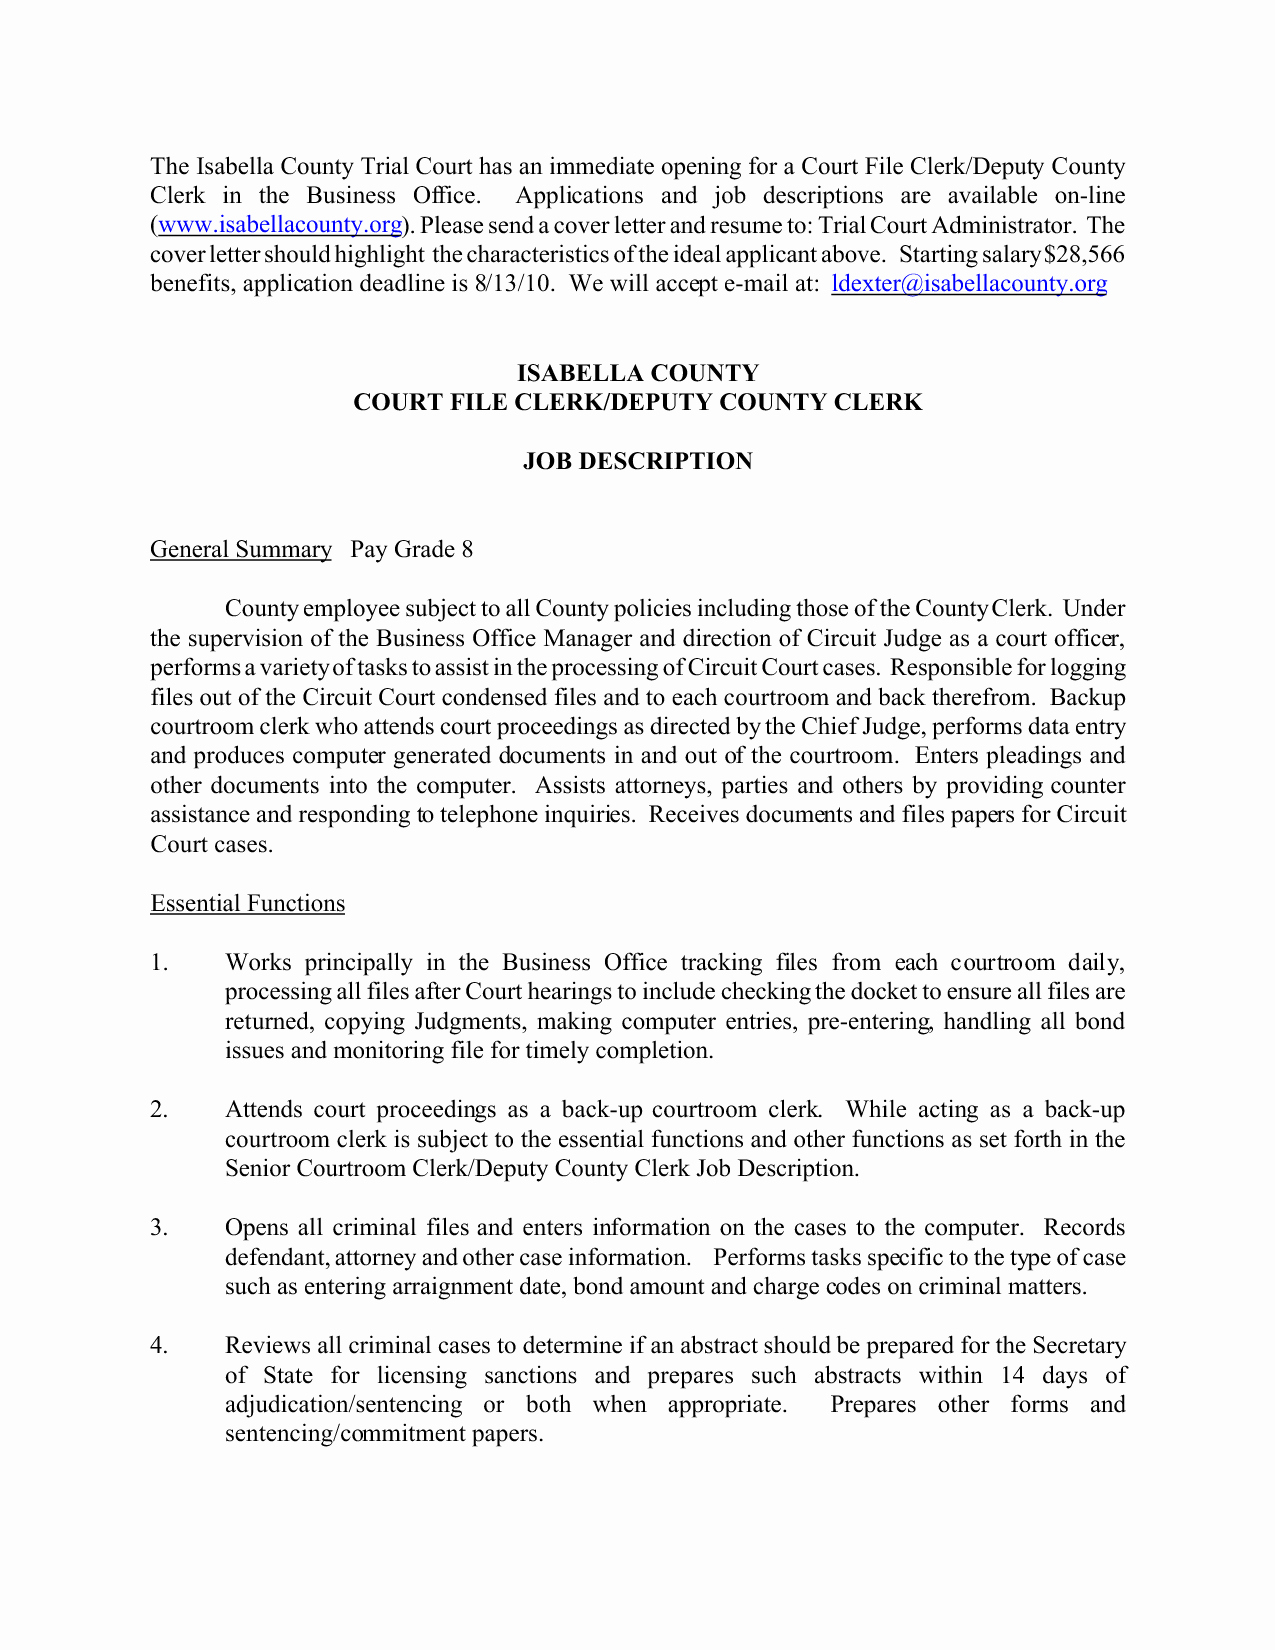 Clerical Cover Letter Template Examples | Letter Cover Templates